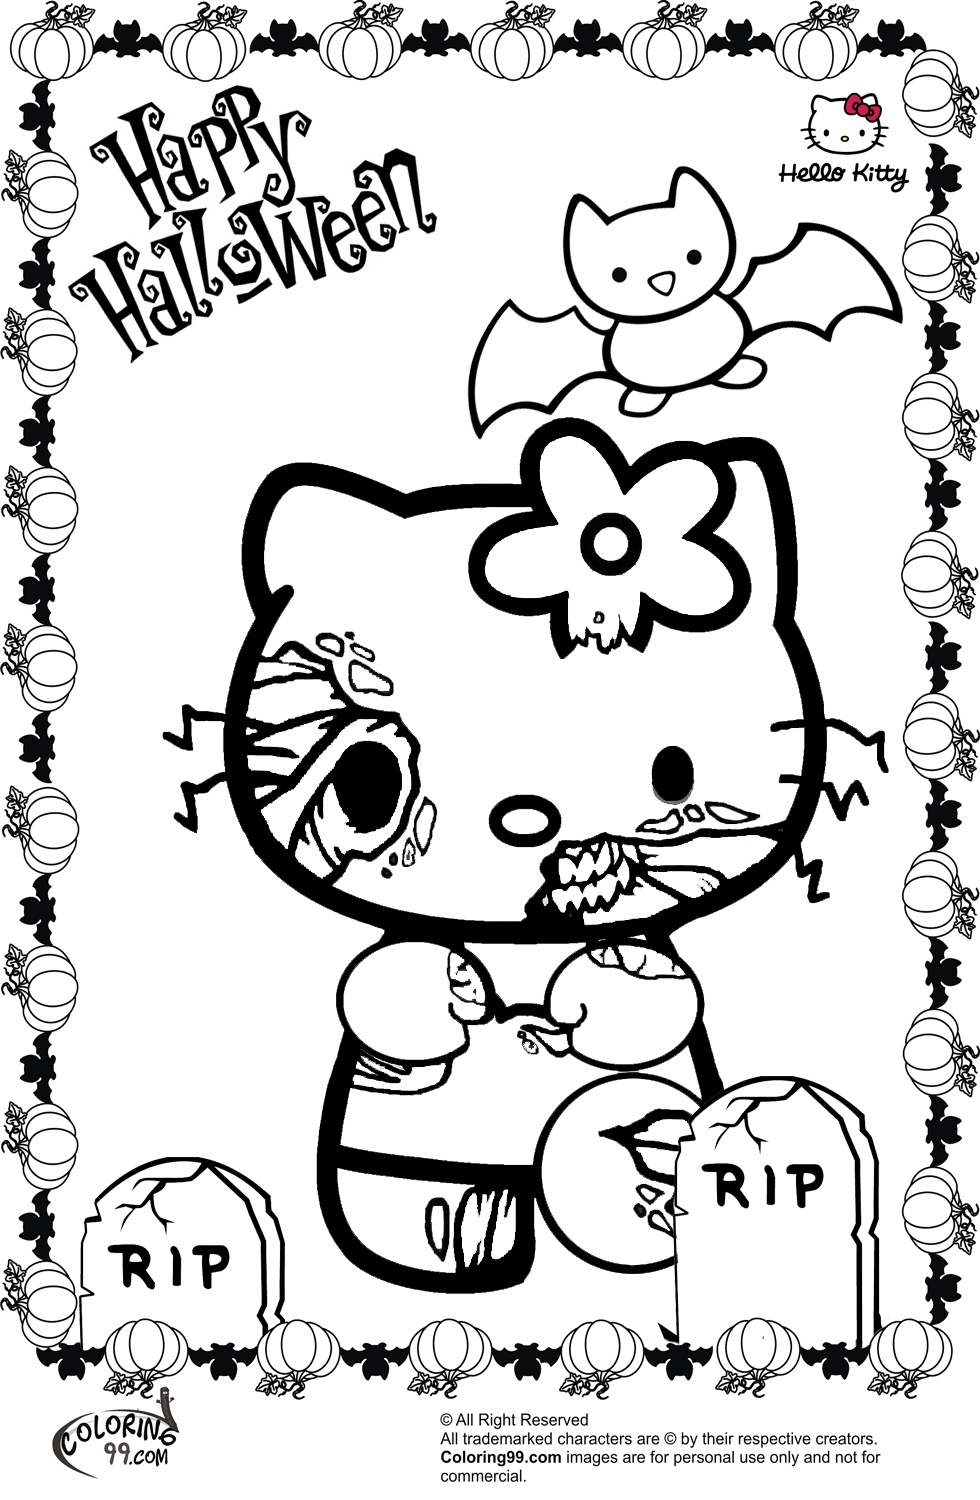 hello kitty coloring pages halloween hello kitty halloween coloring pages hello kitty happy halloween coloring pages hello kitty